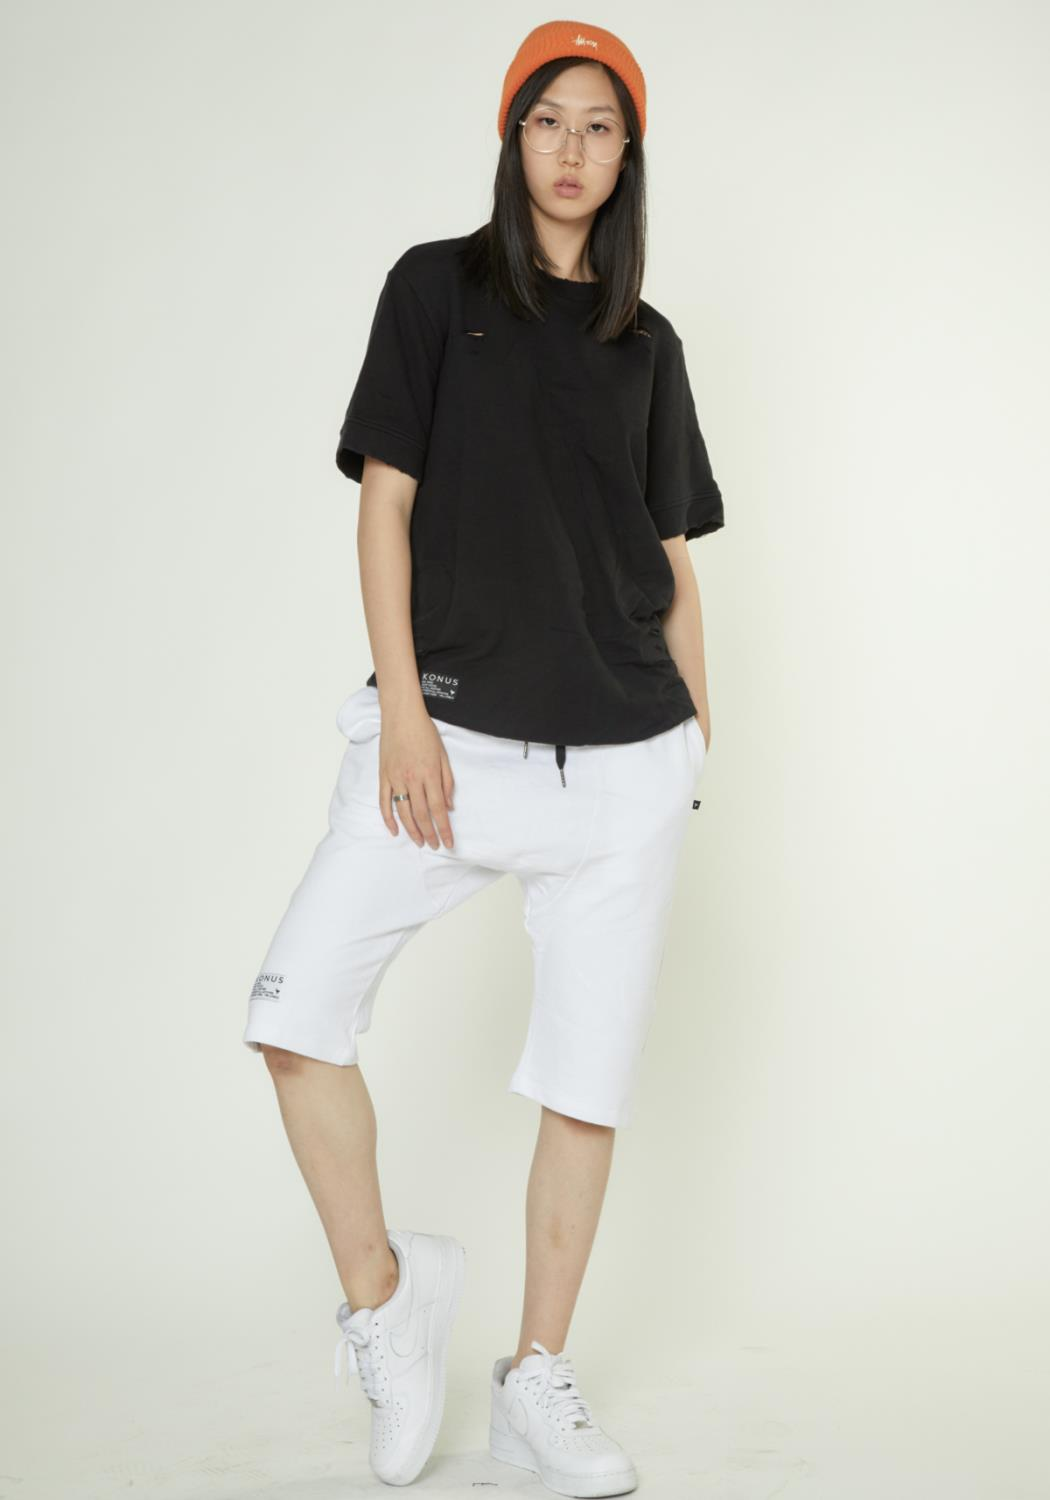 FRENCH TERRY SHORT SLEEVE TEE WITH GRINDING